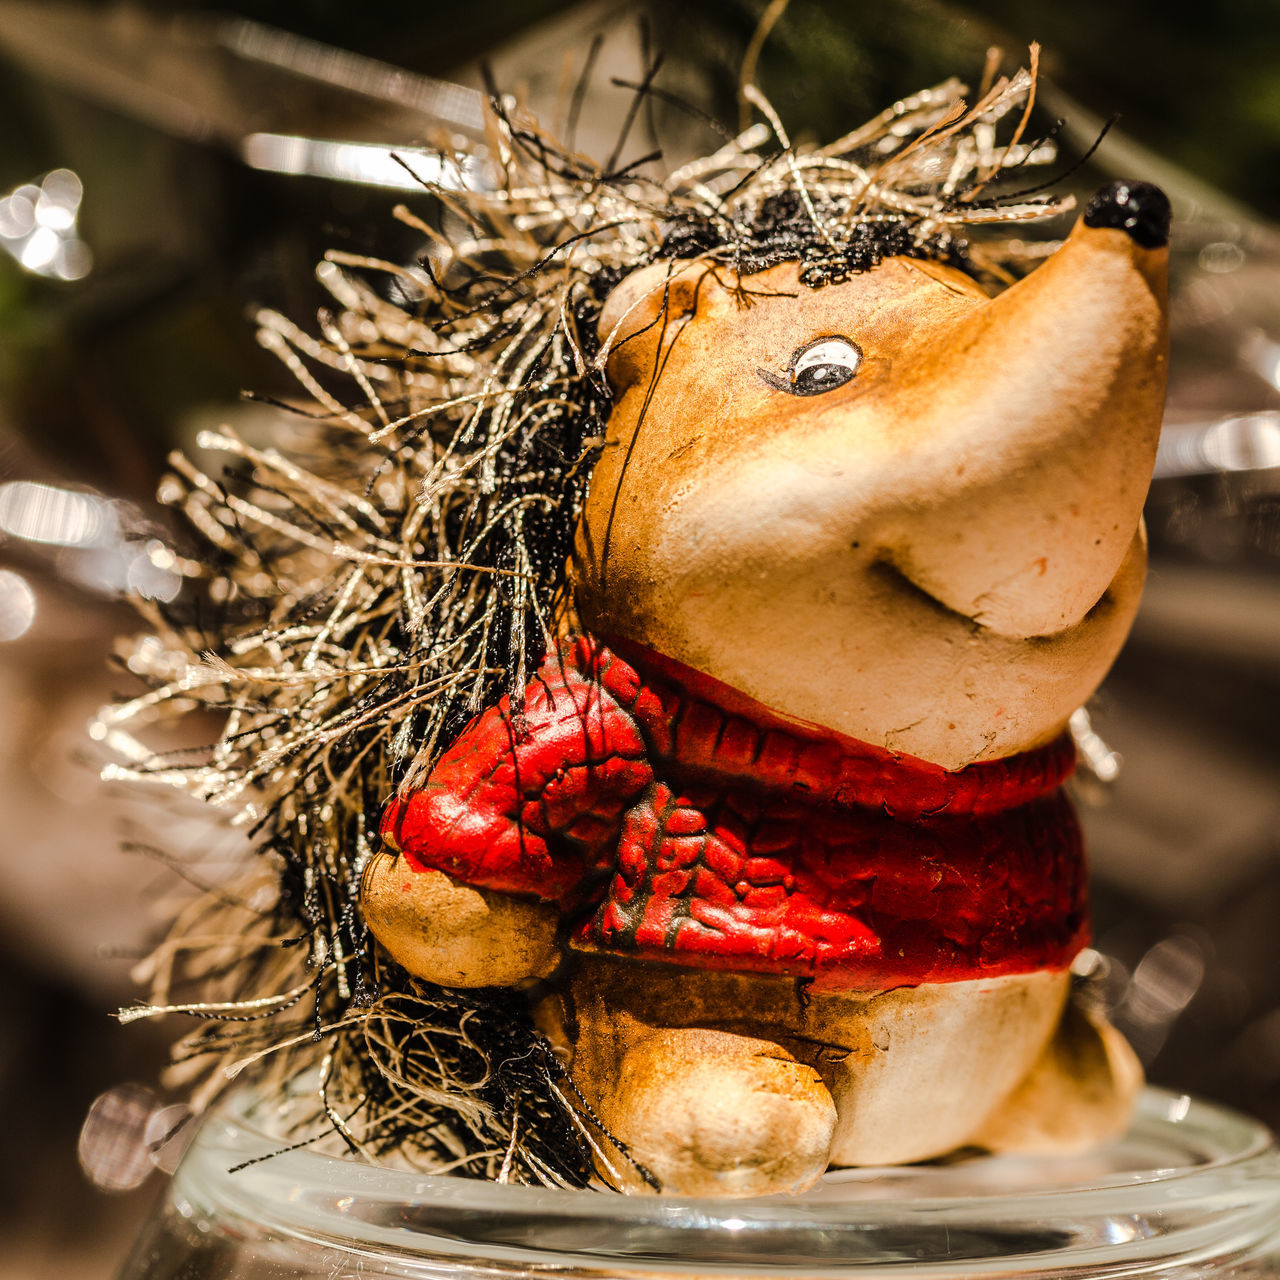 Animal Themes Close-up Day Focus On Foreground Stone Hedgehog Red Color Wool Hair Smiling Hedgehog Hedgehog Indoors  No People Posing Of Hedgehog